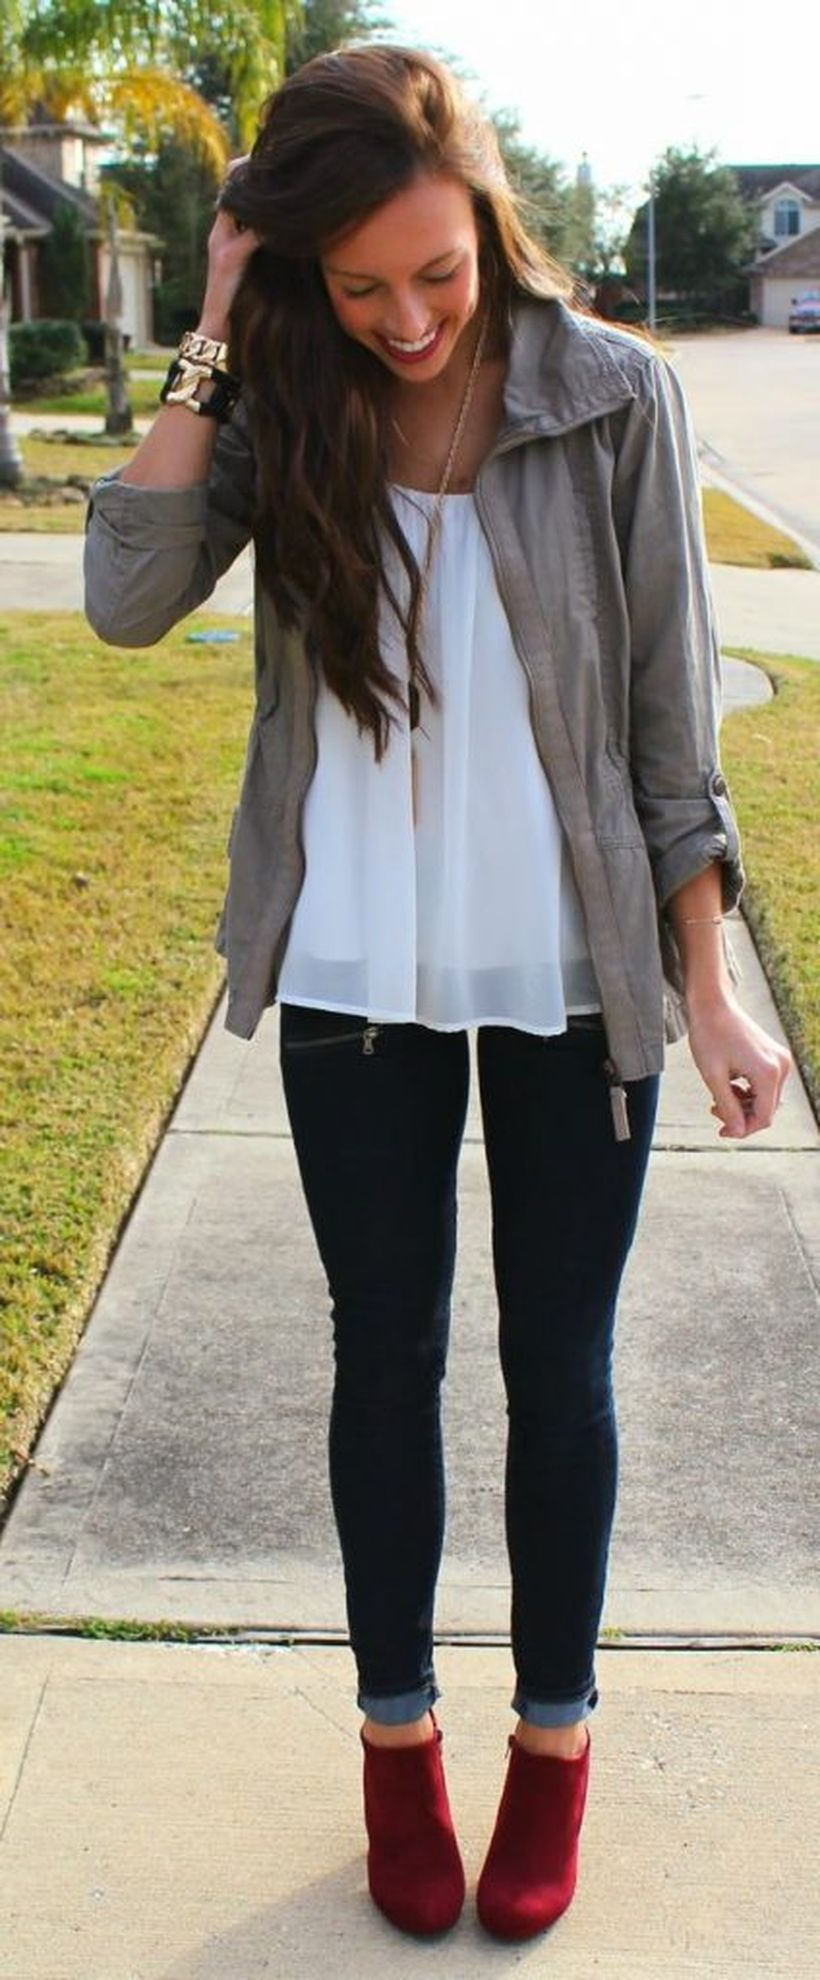 Best casual fall night outfits ideas for going out 62